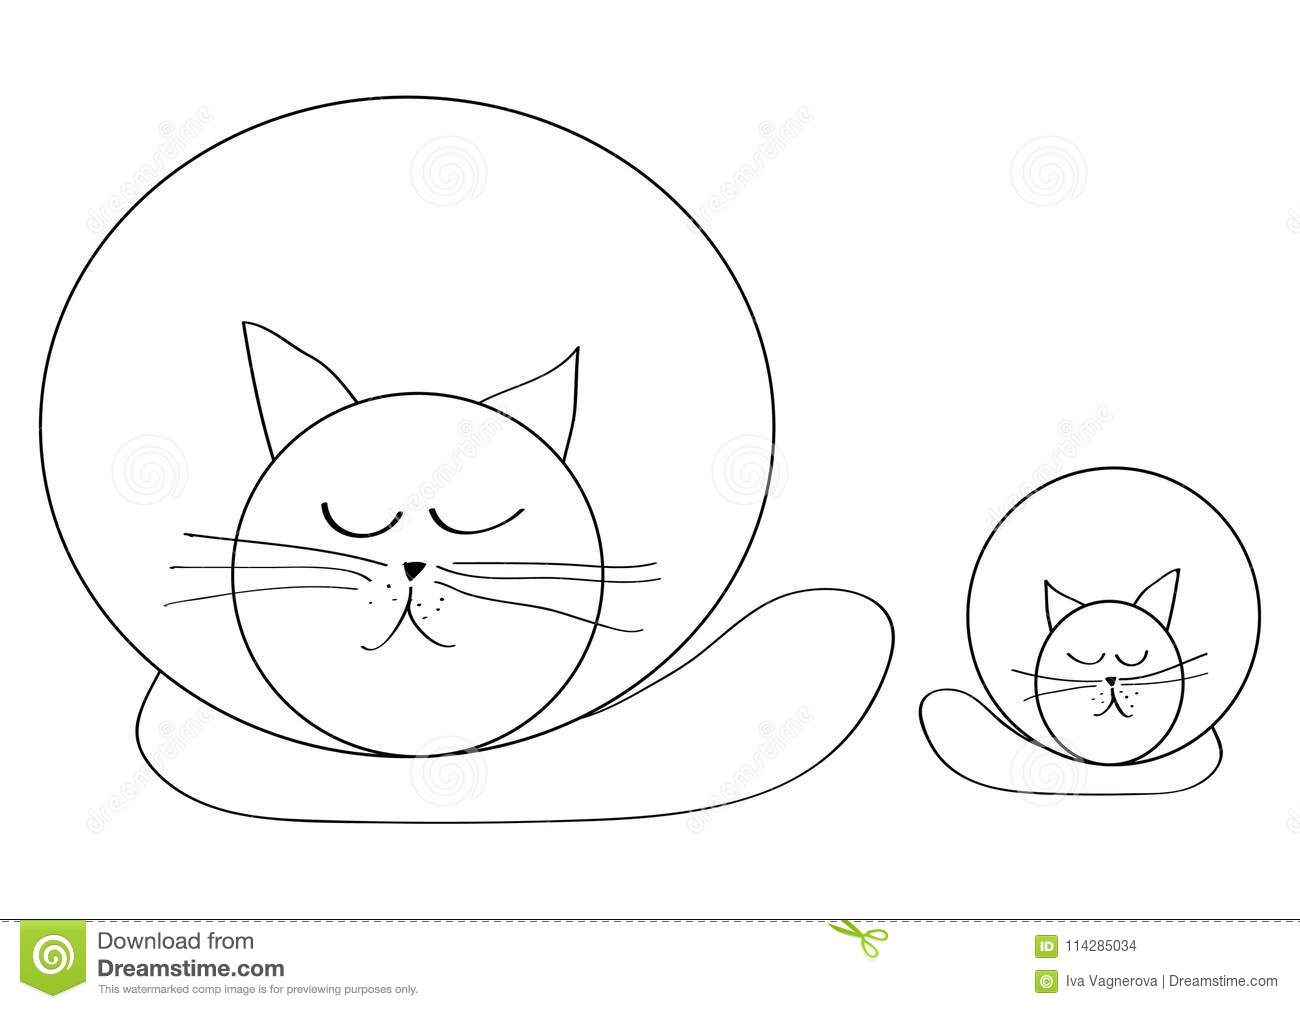 Simplicity drawing cat and kitty relaxing and sleeping isolated on white background